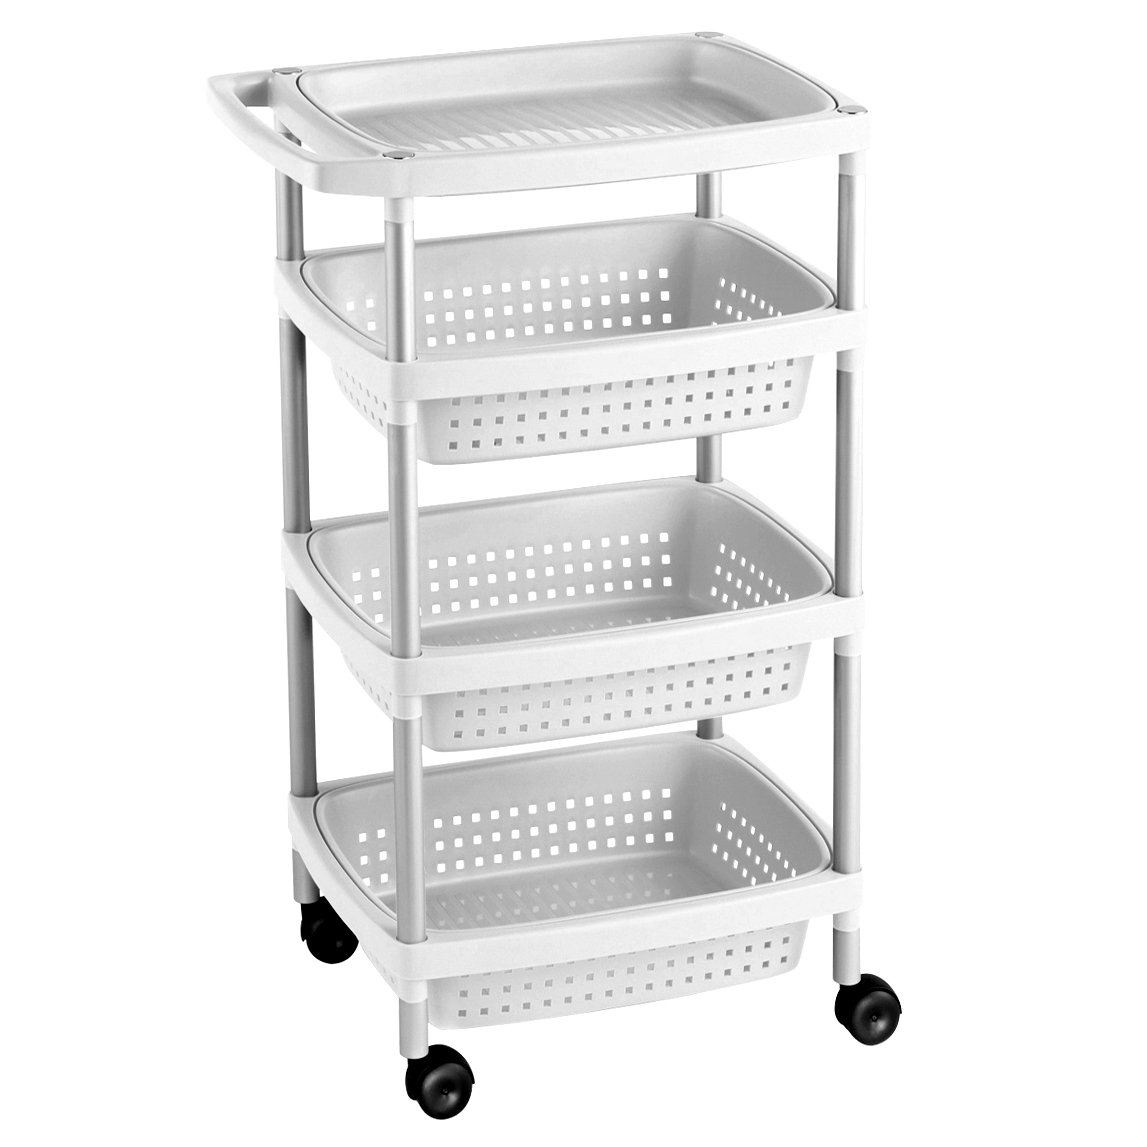 Tatay 7738201 - Vegetable Trolley with 4 Levels, Plastic, White, 33 x 43 x 10.3 cm